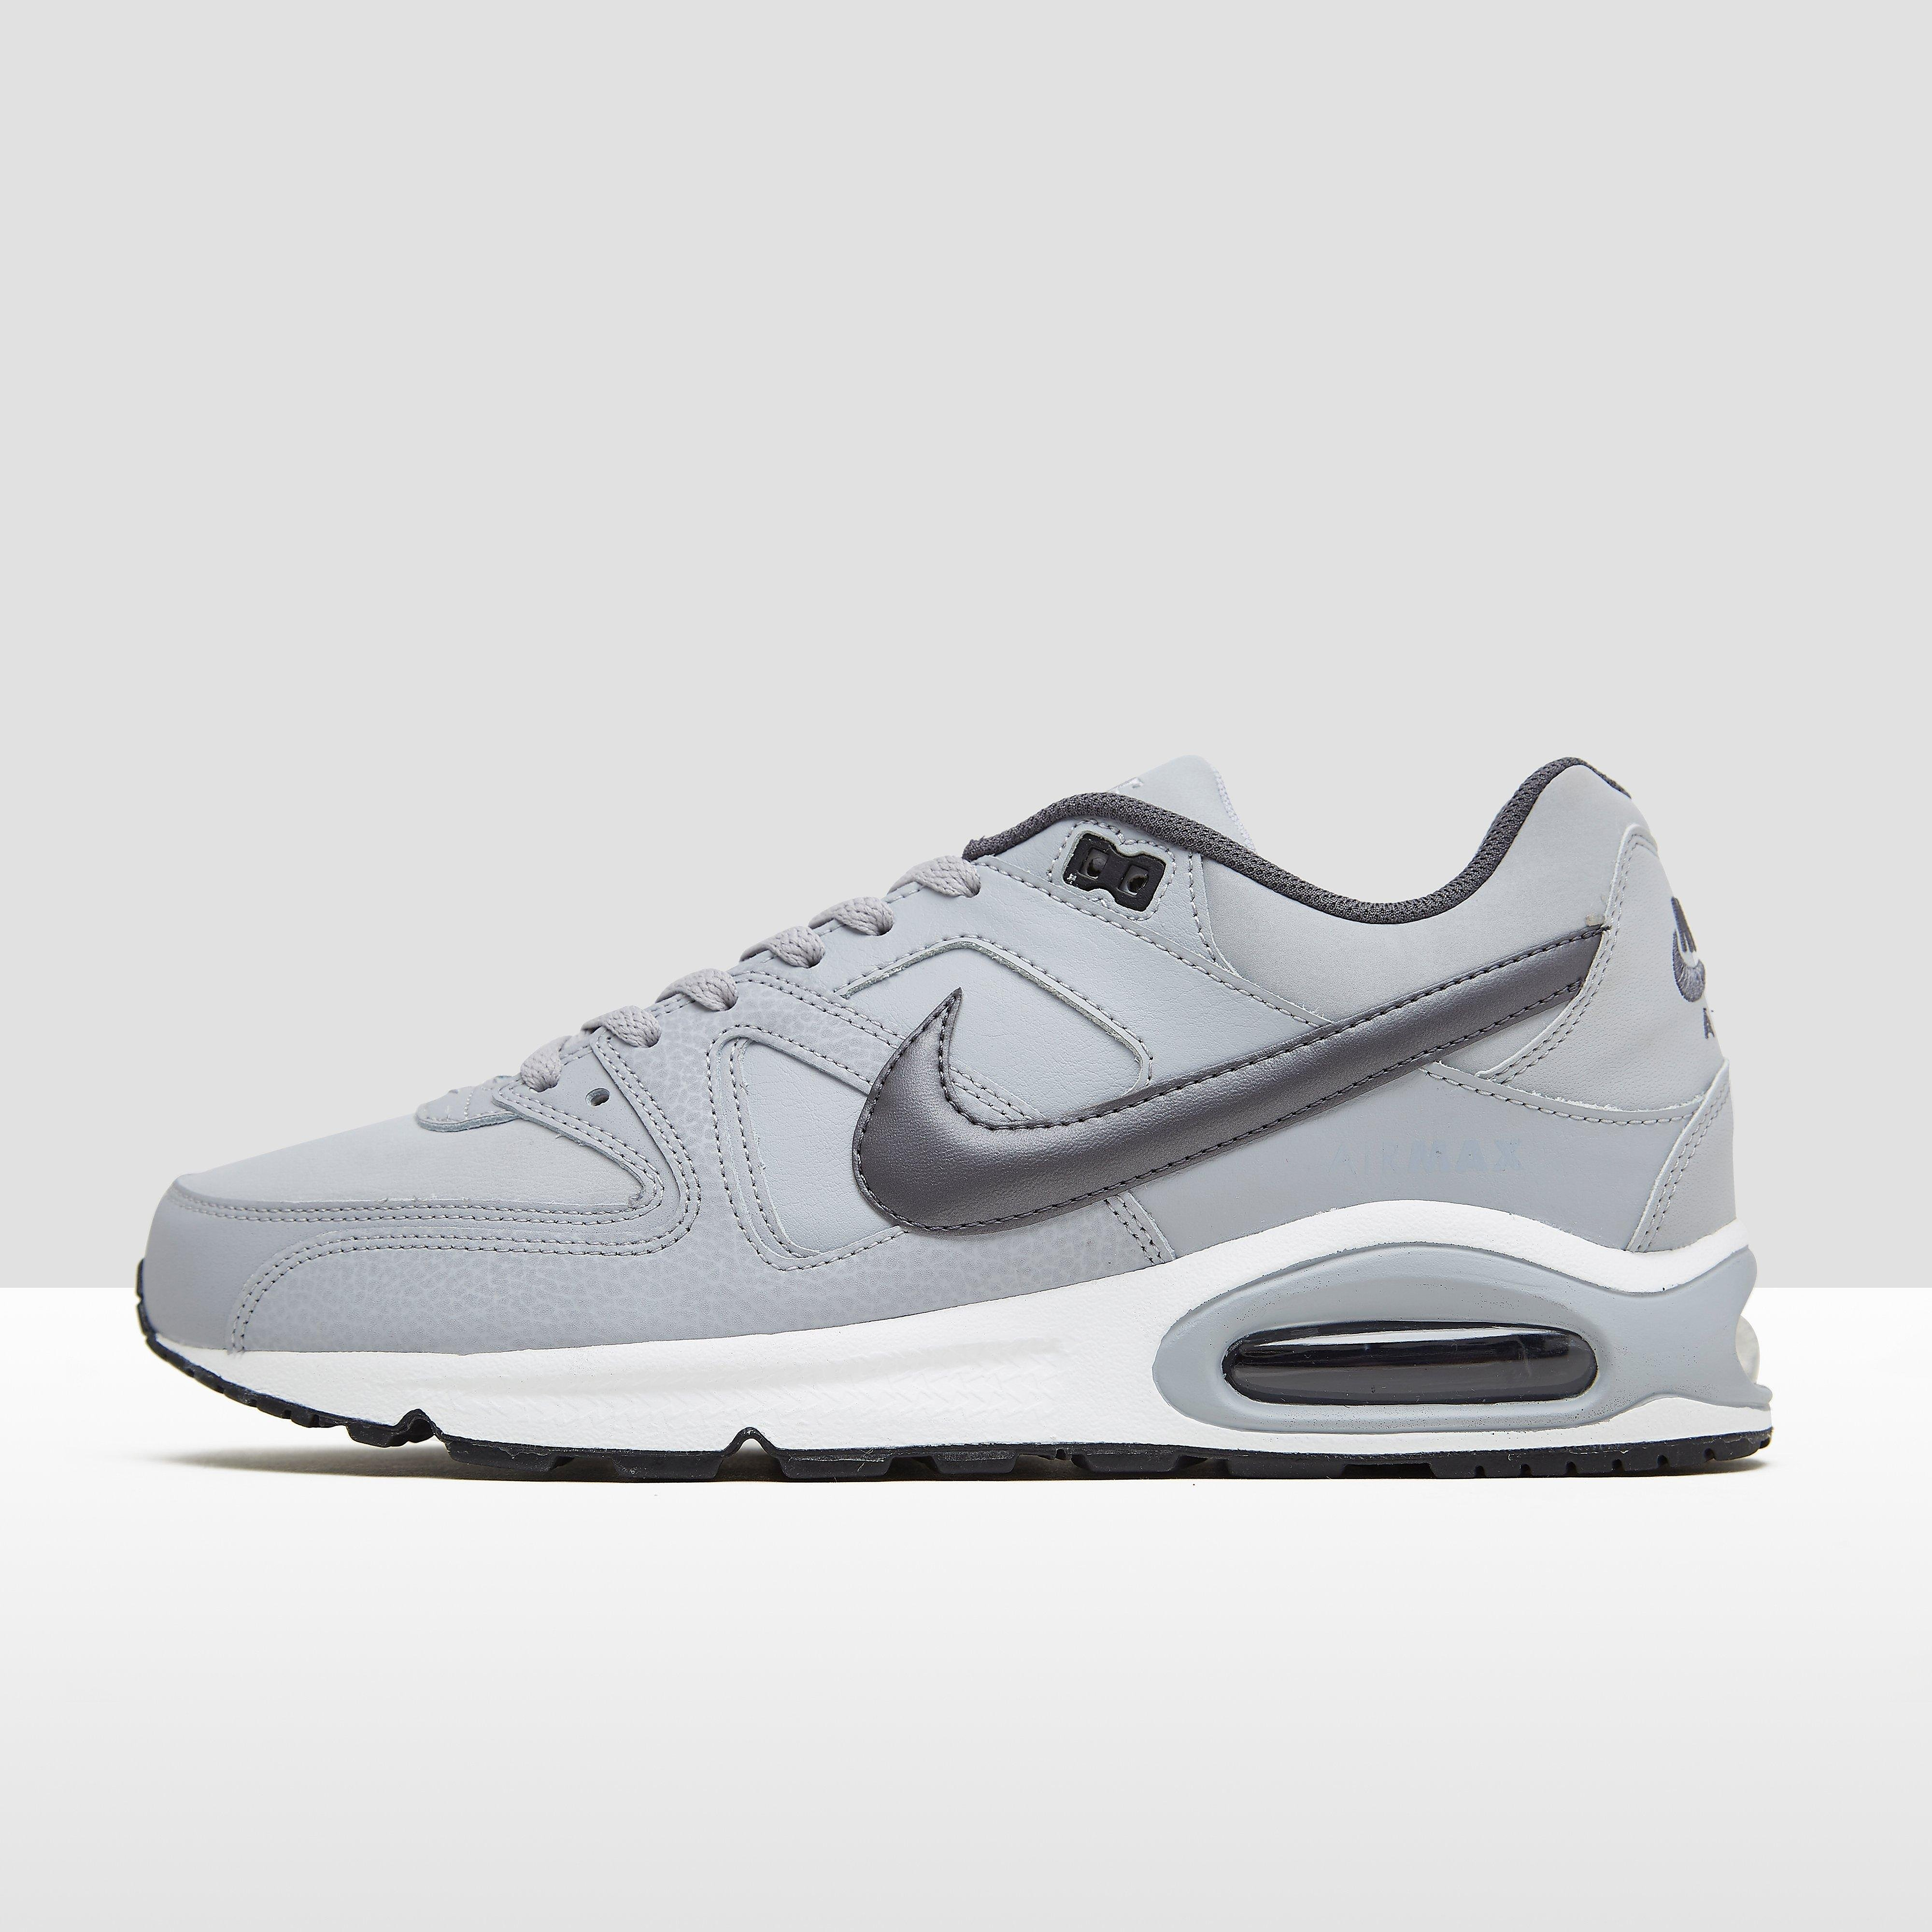 Air Max Command Leather Sneakers Grijs Heren. Size 43